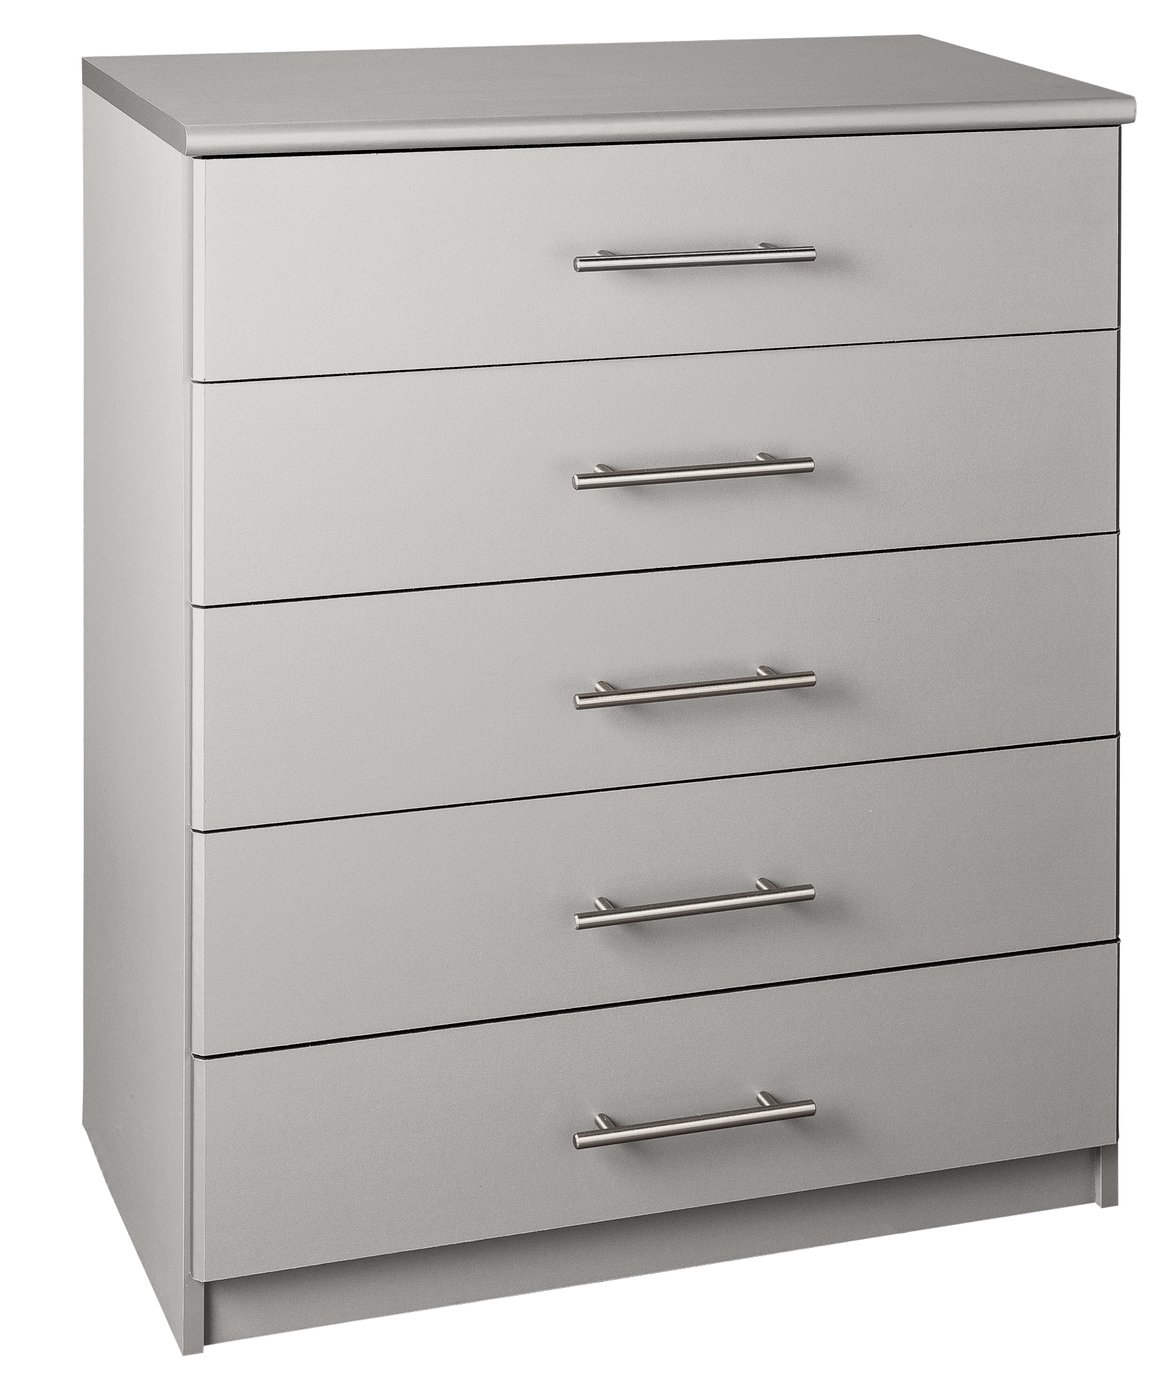 Argos Home Normandy 5 Drawer Chest